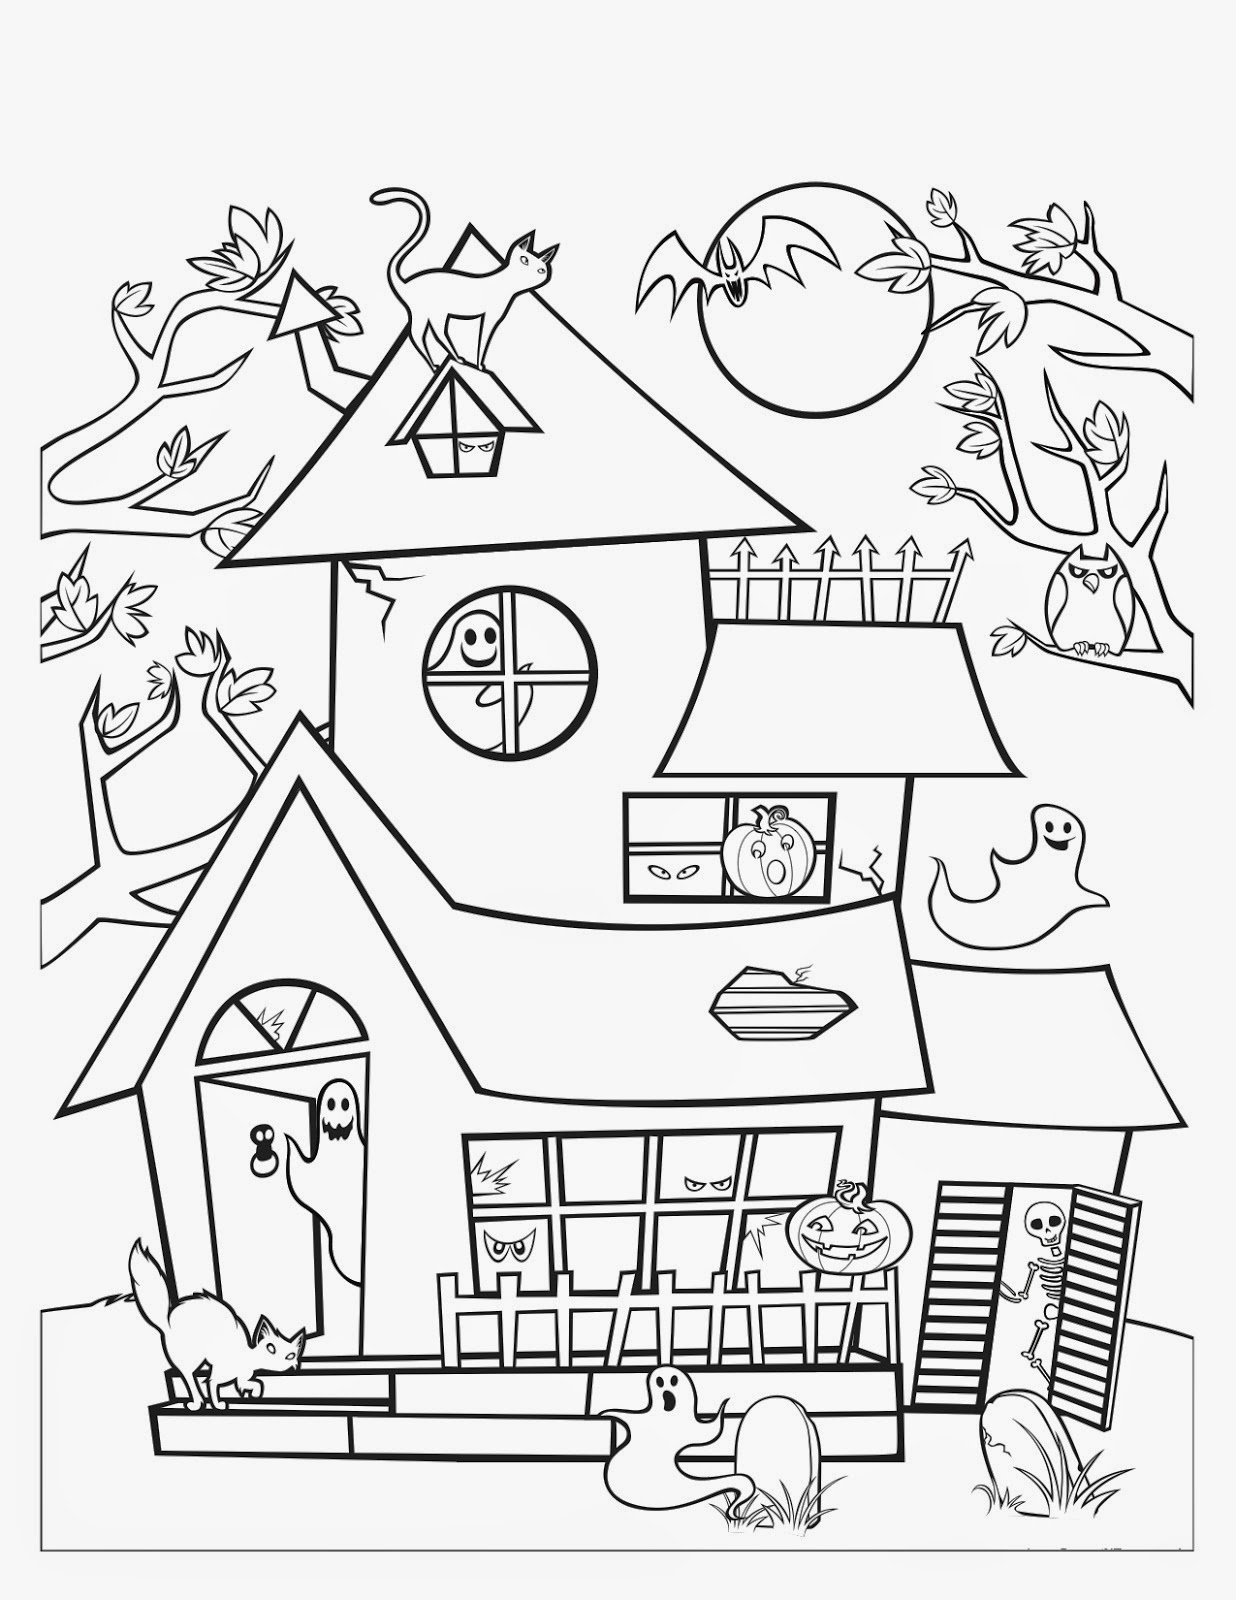 simple haunted house drawing at getdrawings com